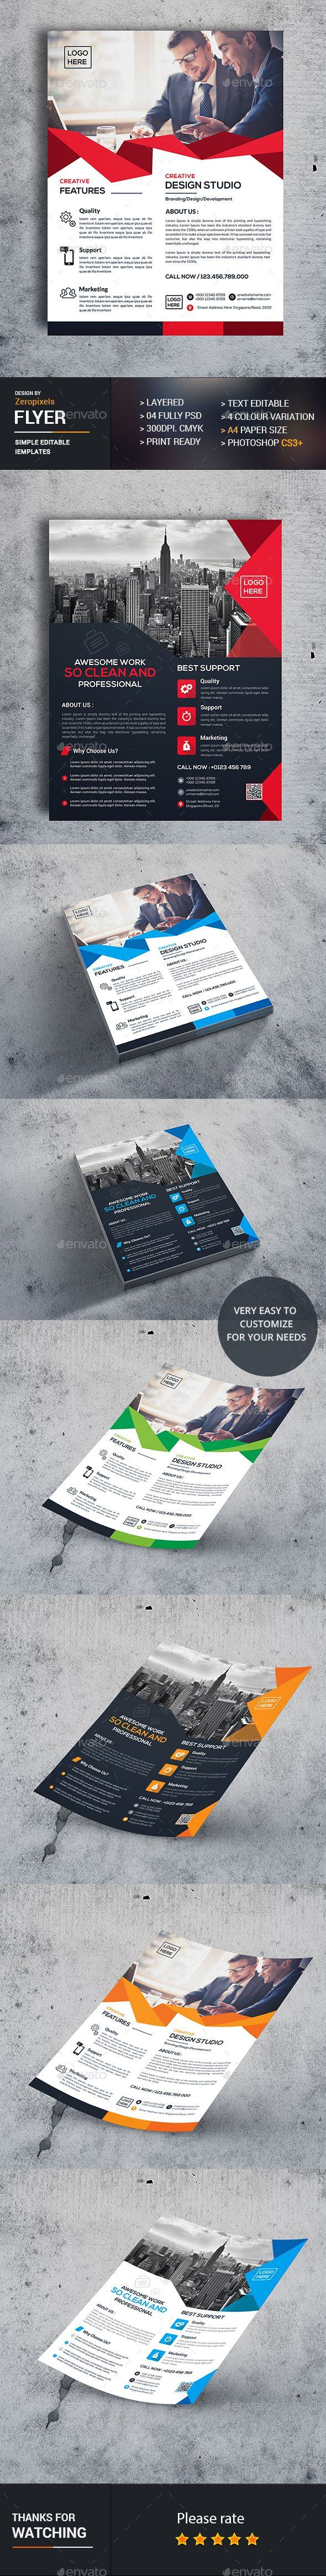 Flyer Bundle Templates PSD. Download here: http://graphicriver.net/item/flyer-bundle/16921018?ref=ksioks